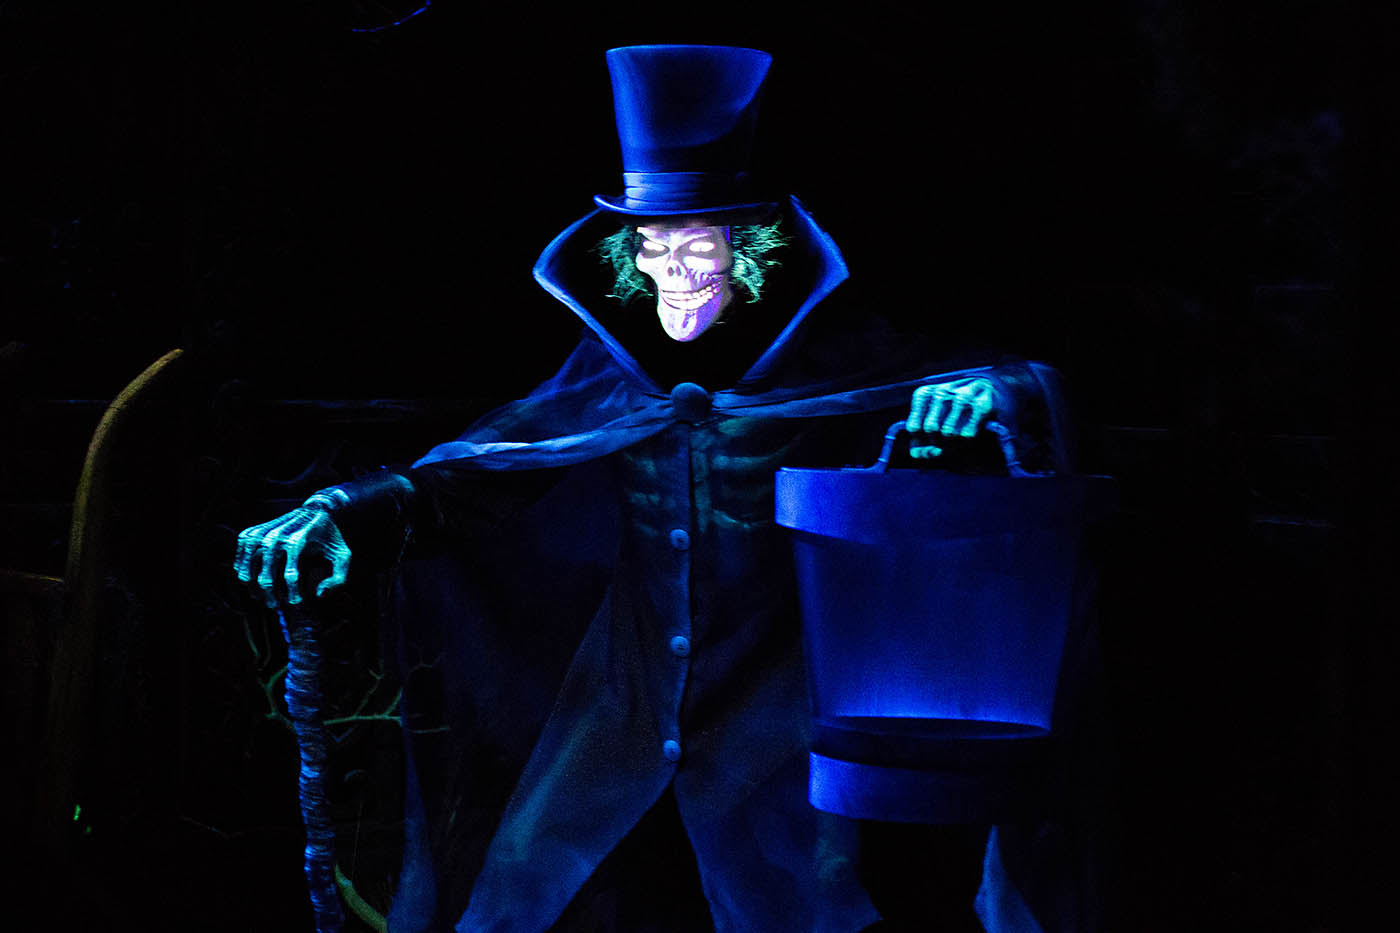 Hatbox Ghost at Disneyland